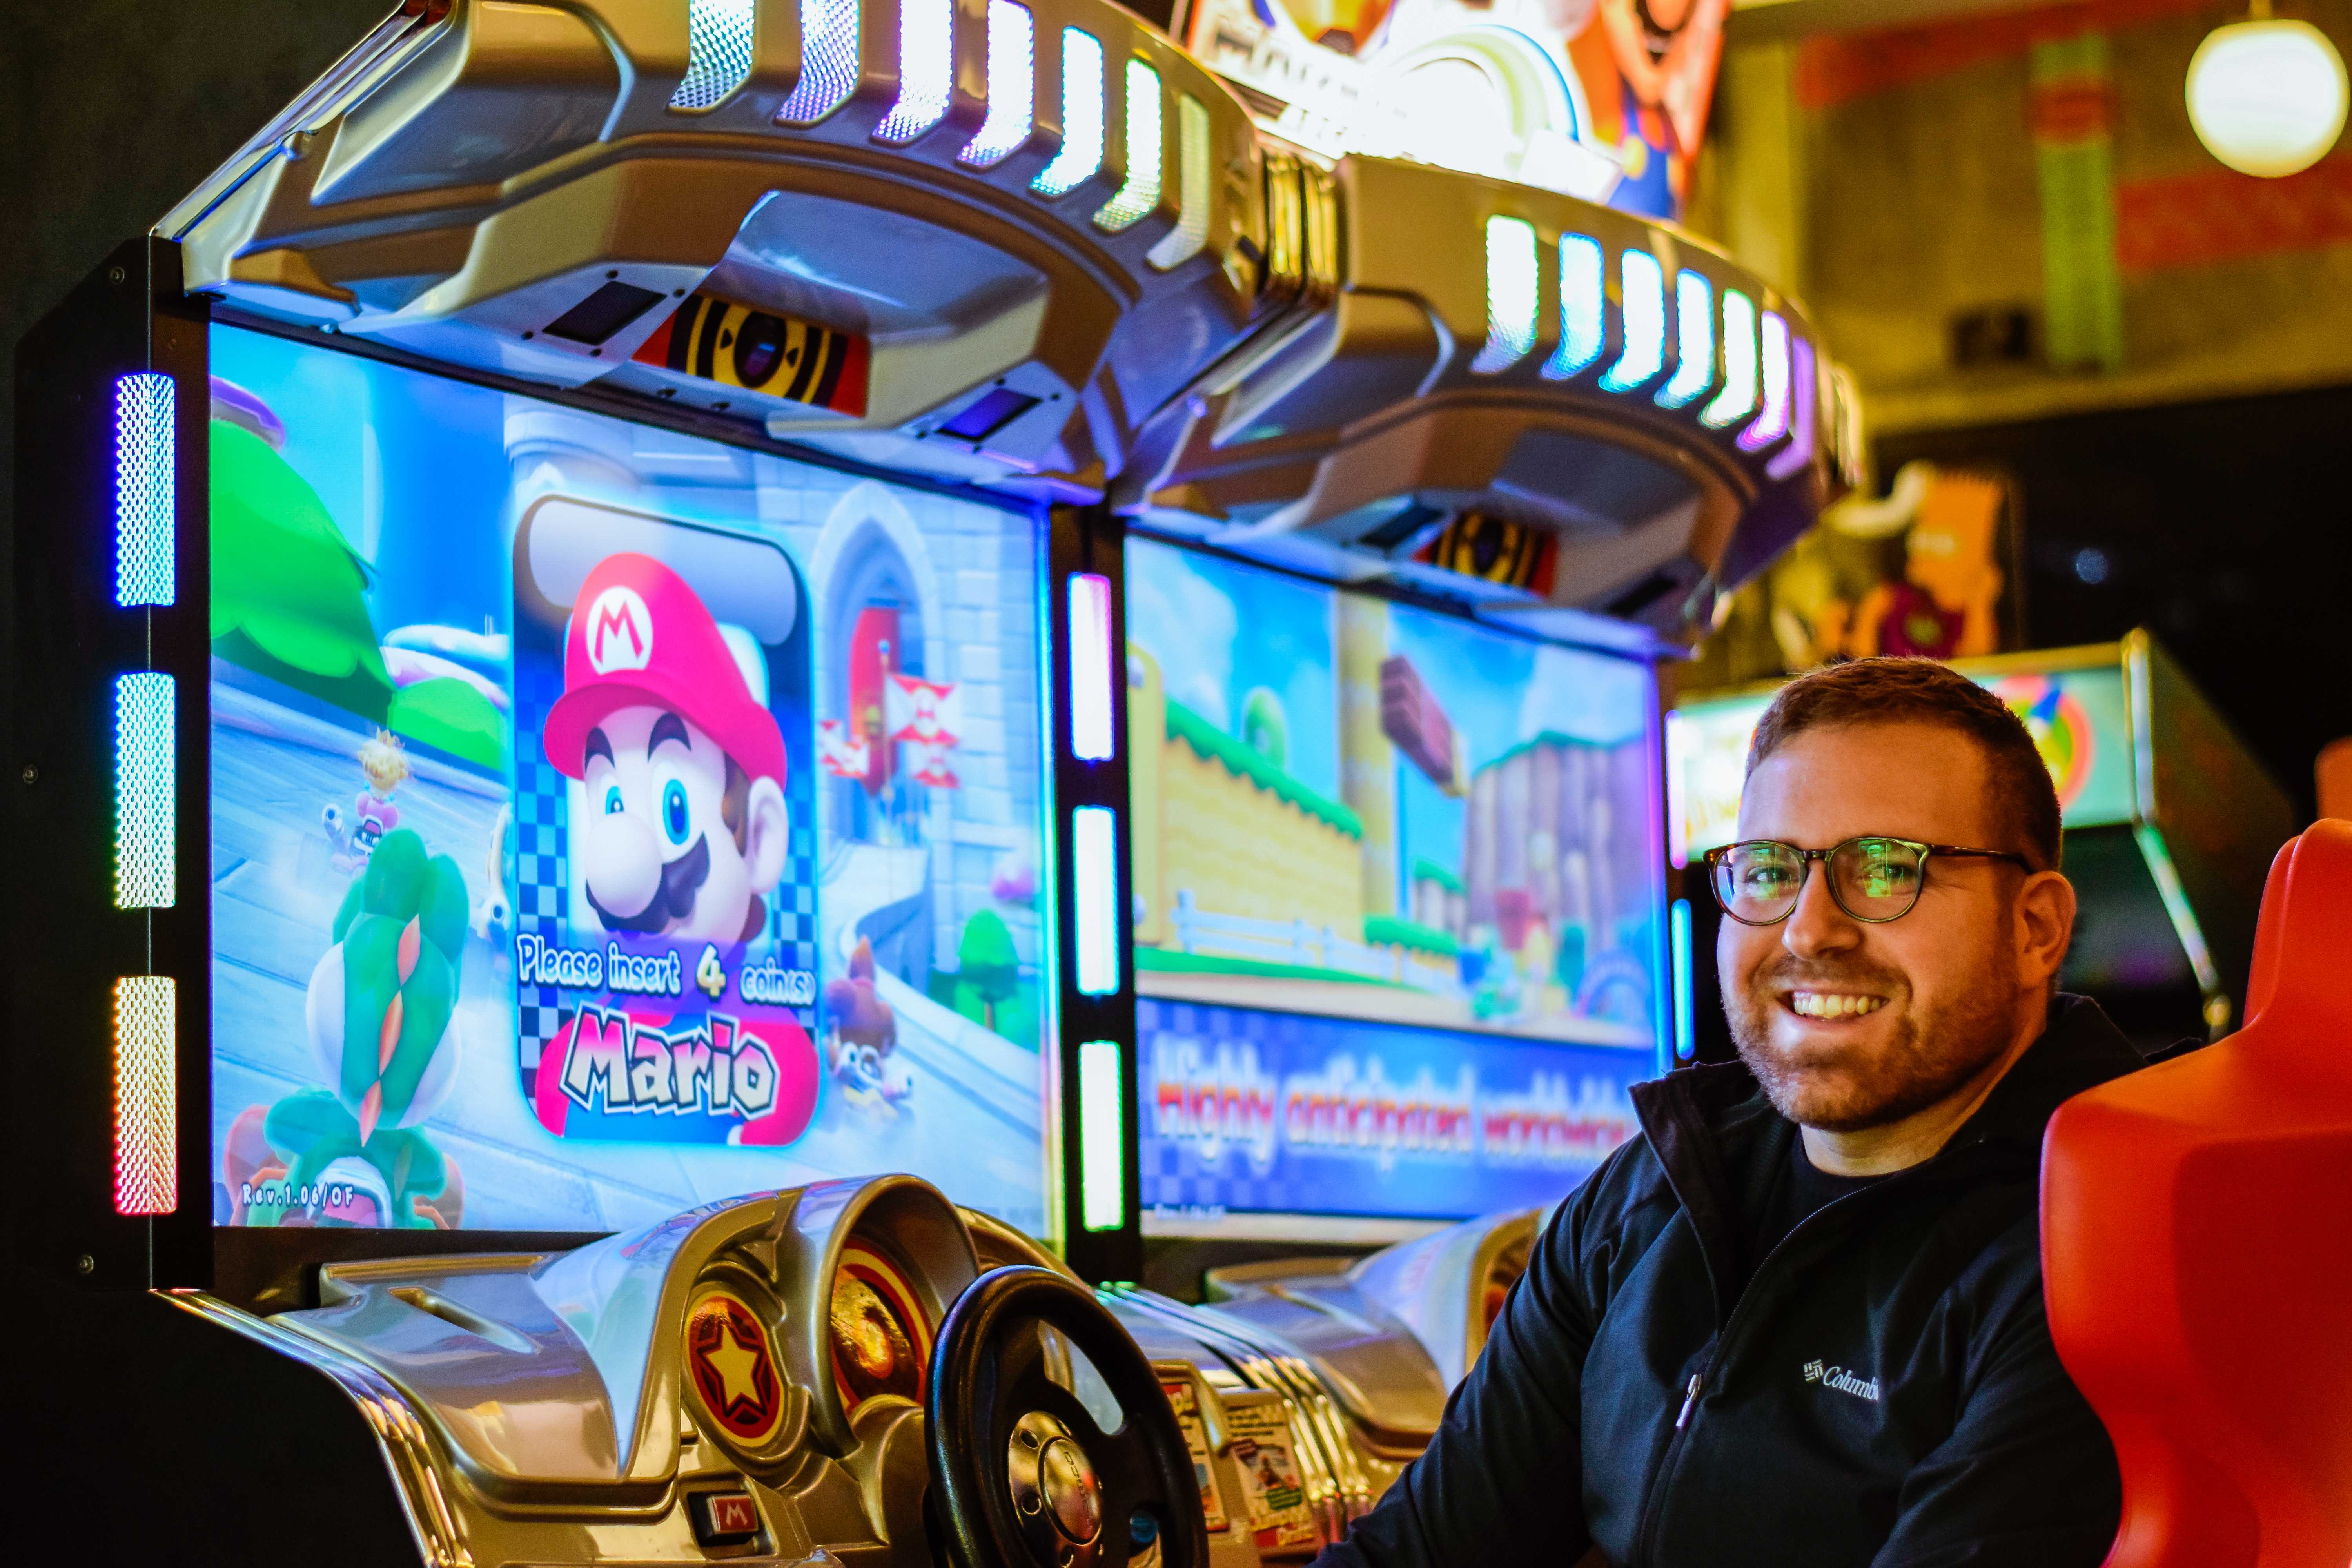 James DiSabatino relaxes in the chair of his favorite arcade game, Mario Kart, in the